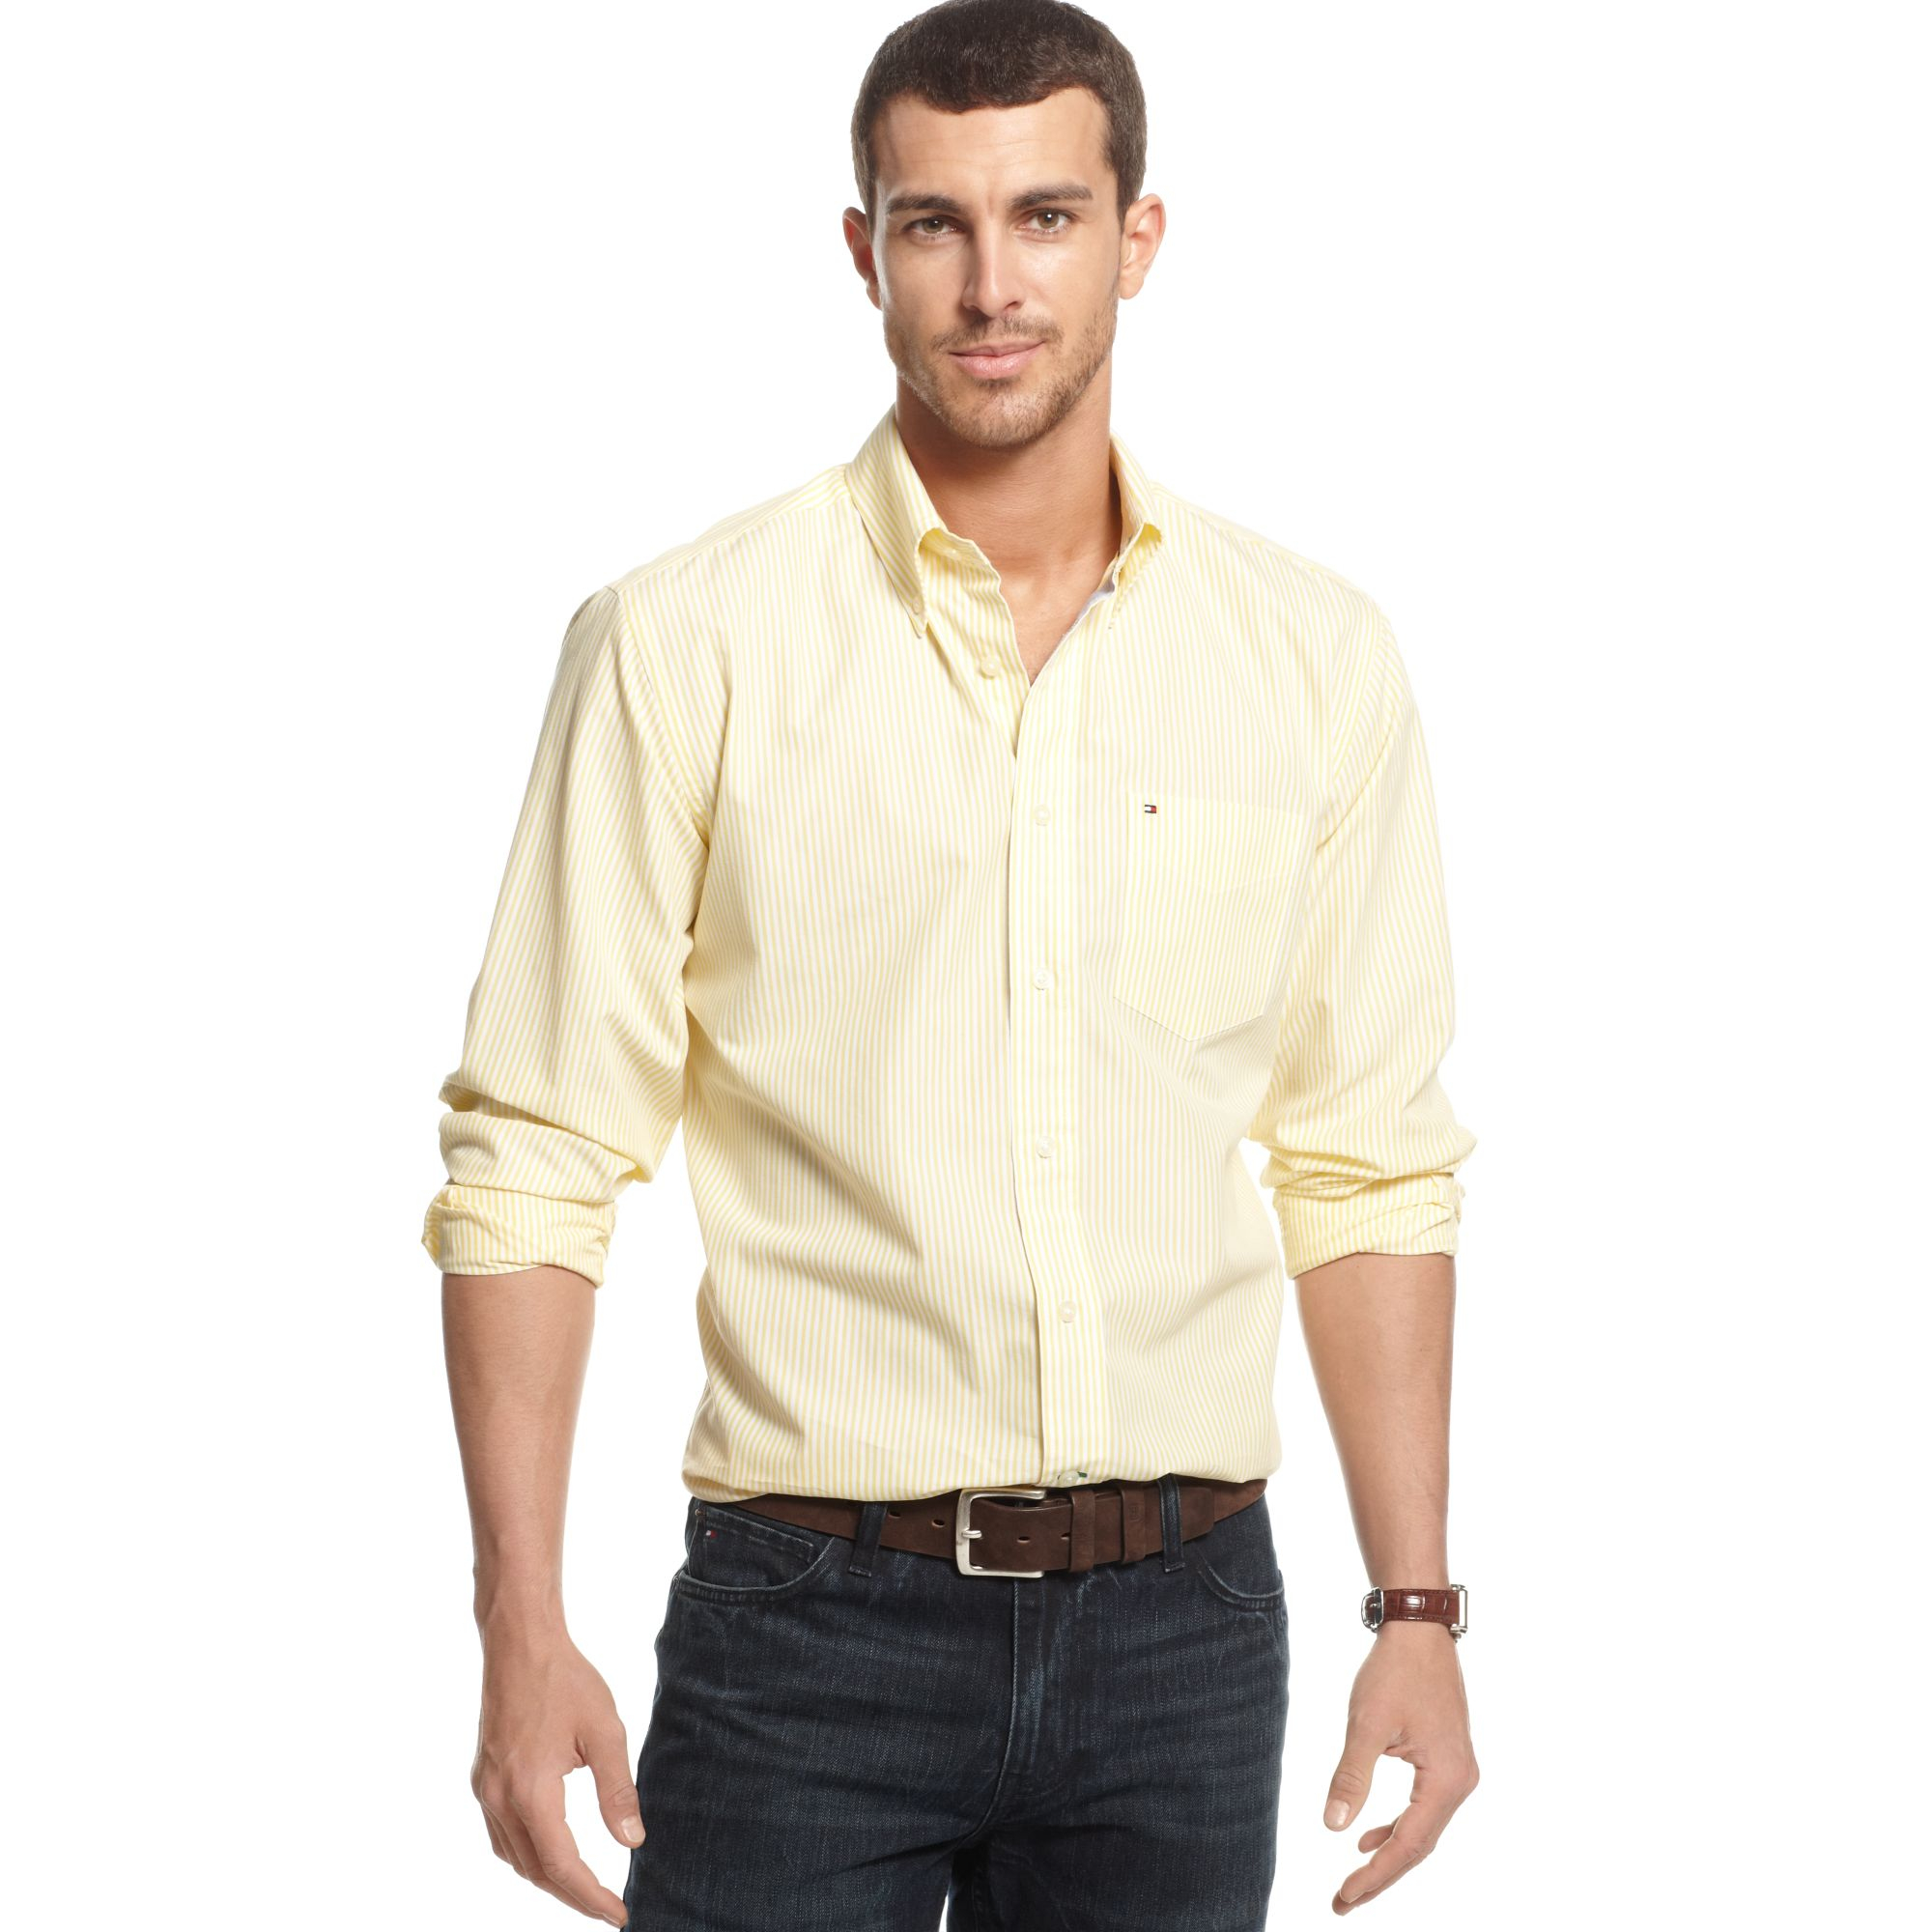 978ace74 Lyst - Tommy Hilfiger Big and Tall Cheever Striped Shirt in Yellow ...